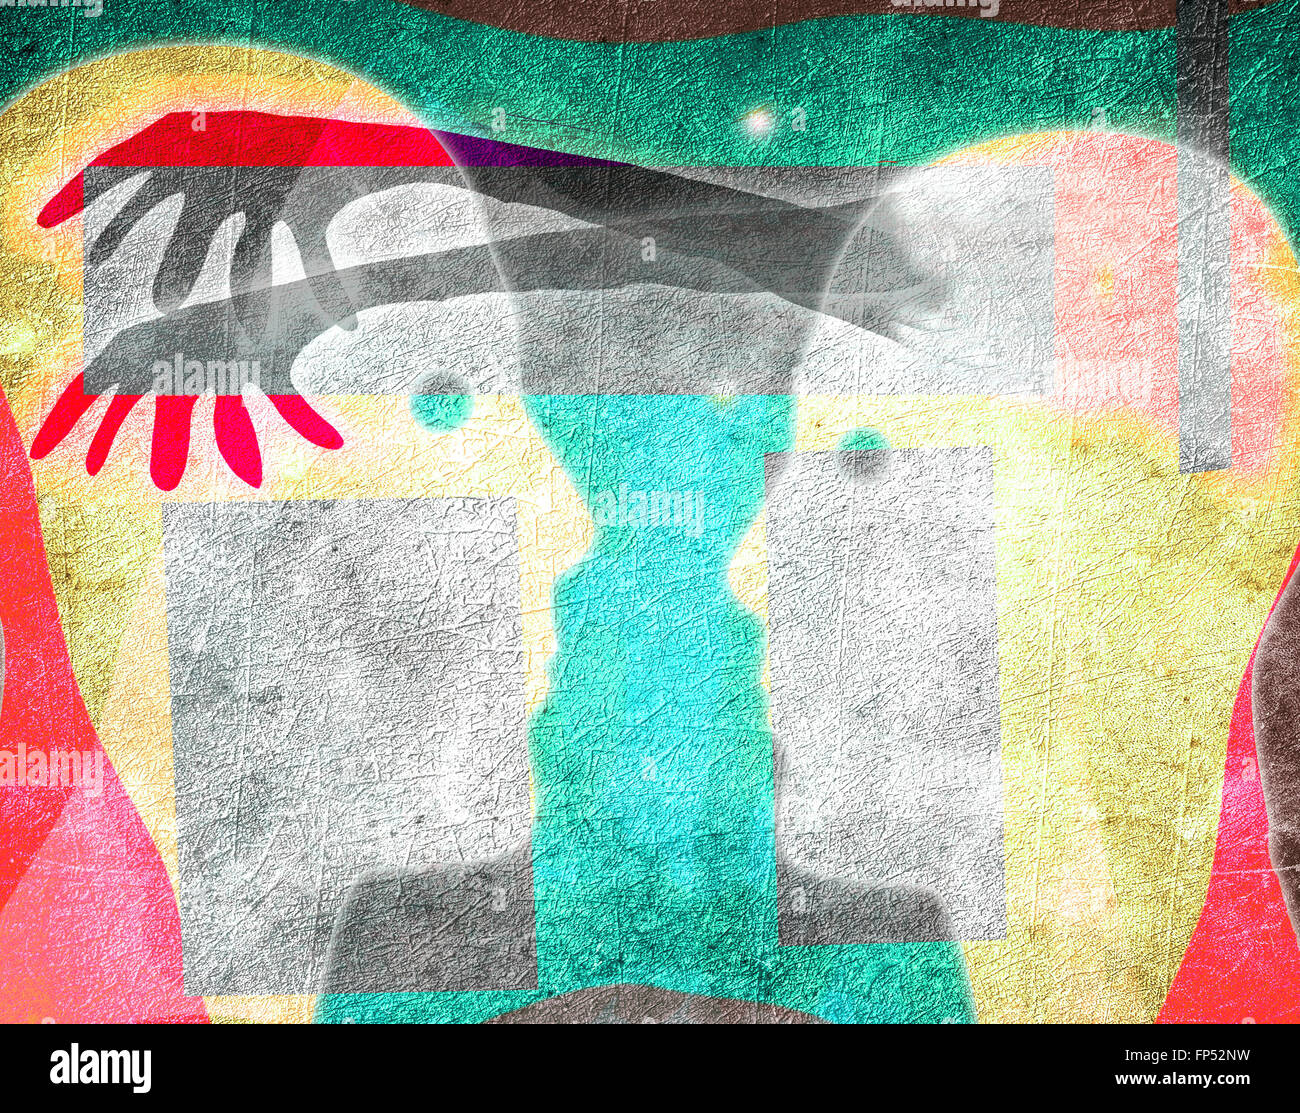 Verstand Manipulation Konzept digitale illustration Stockbild